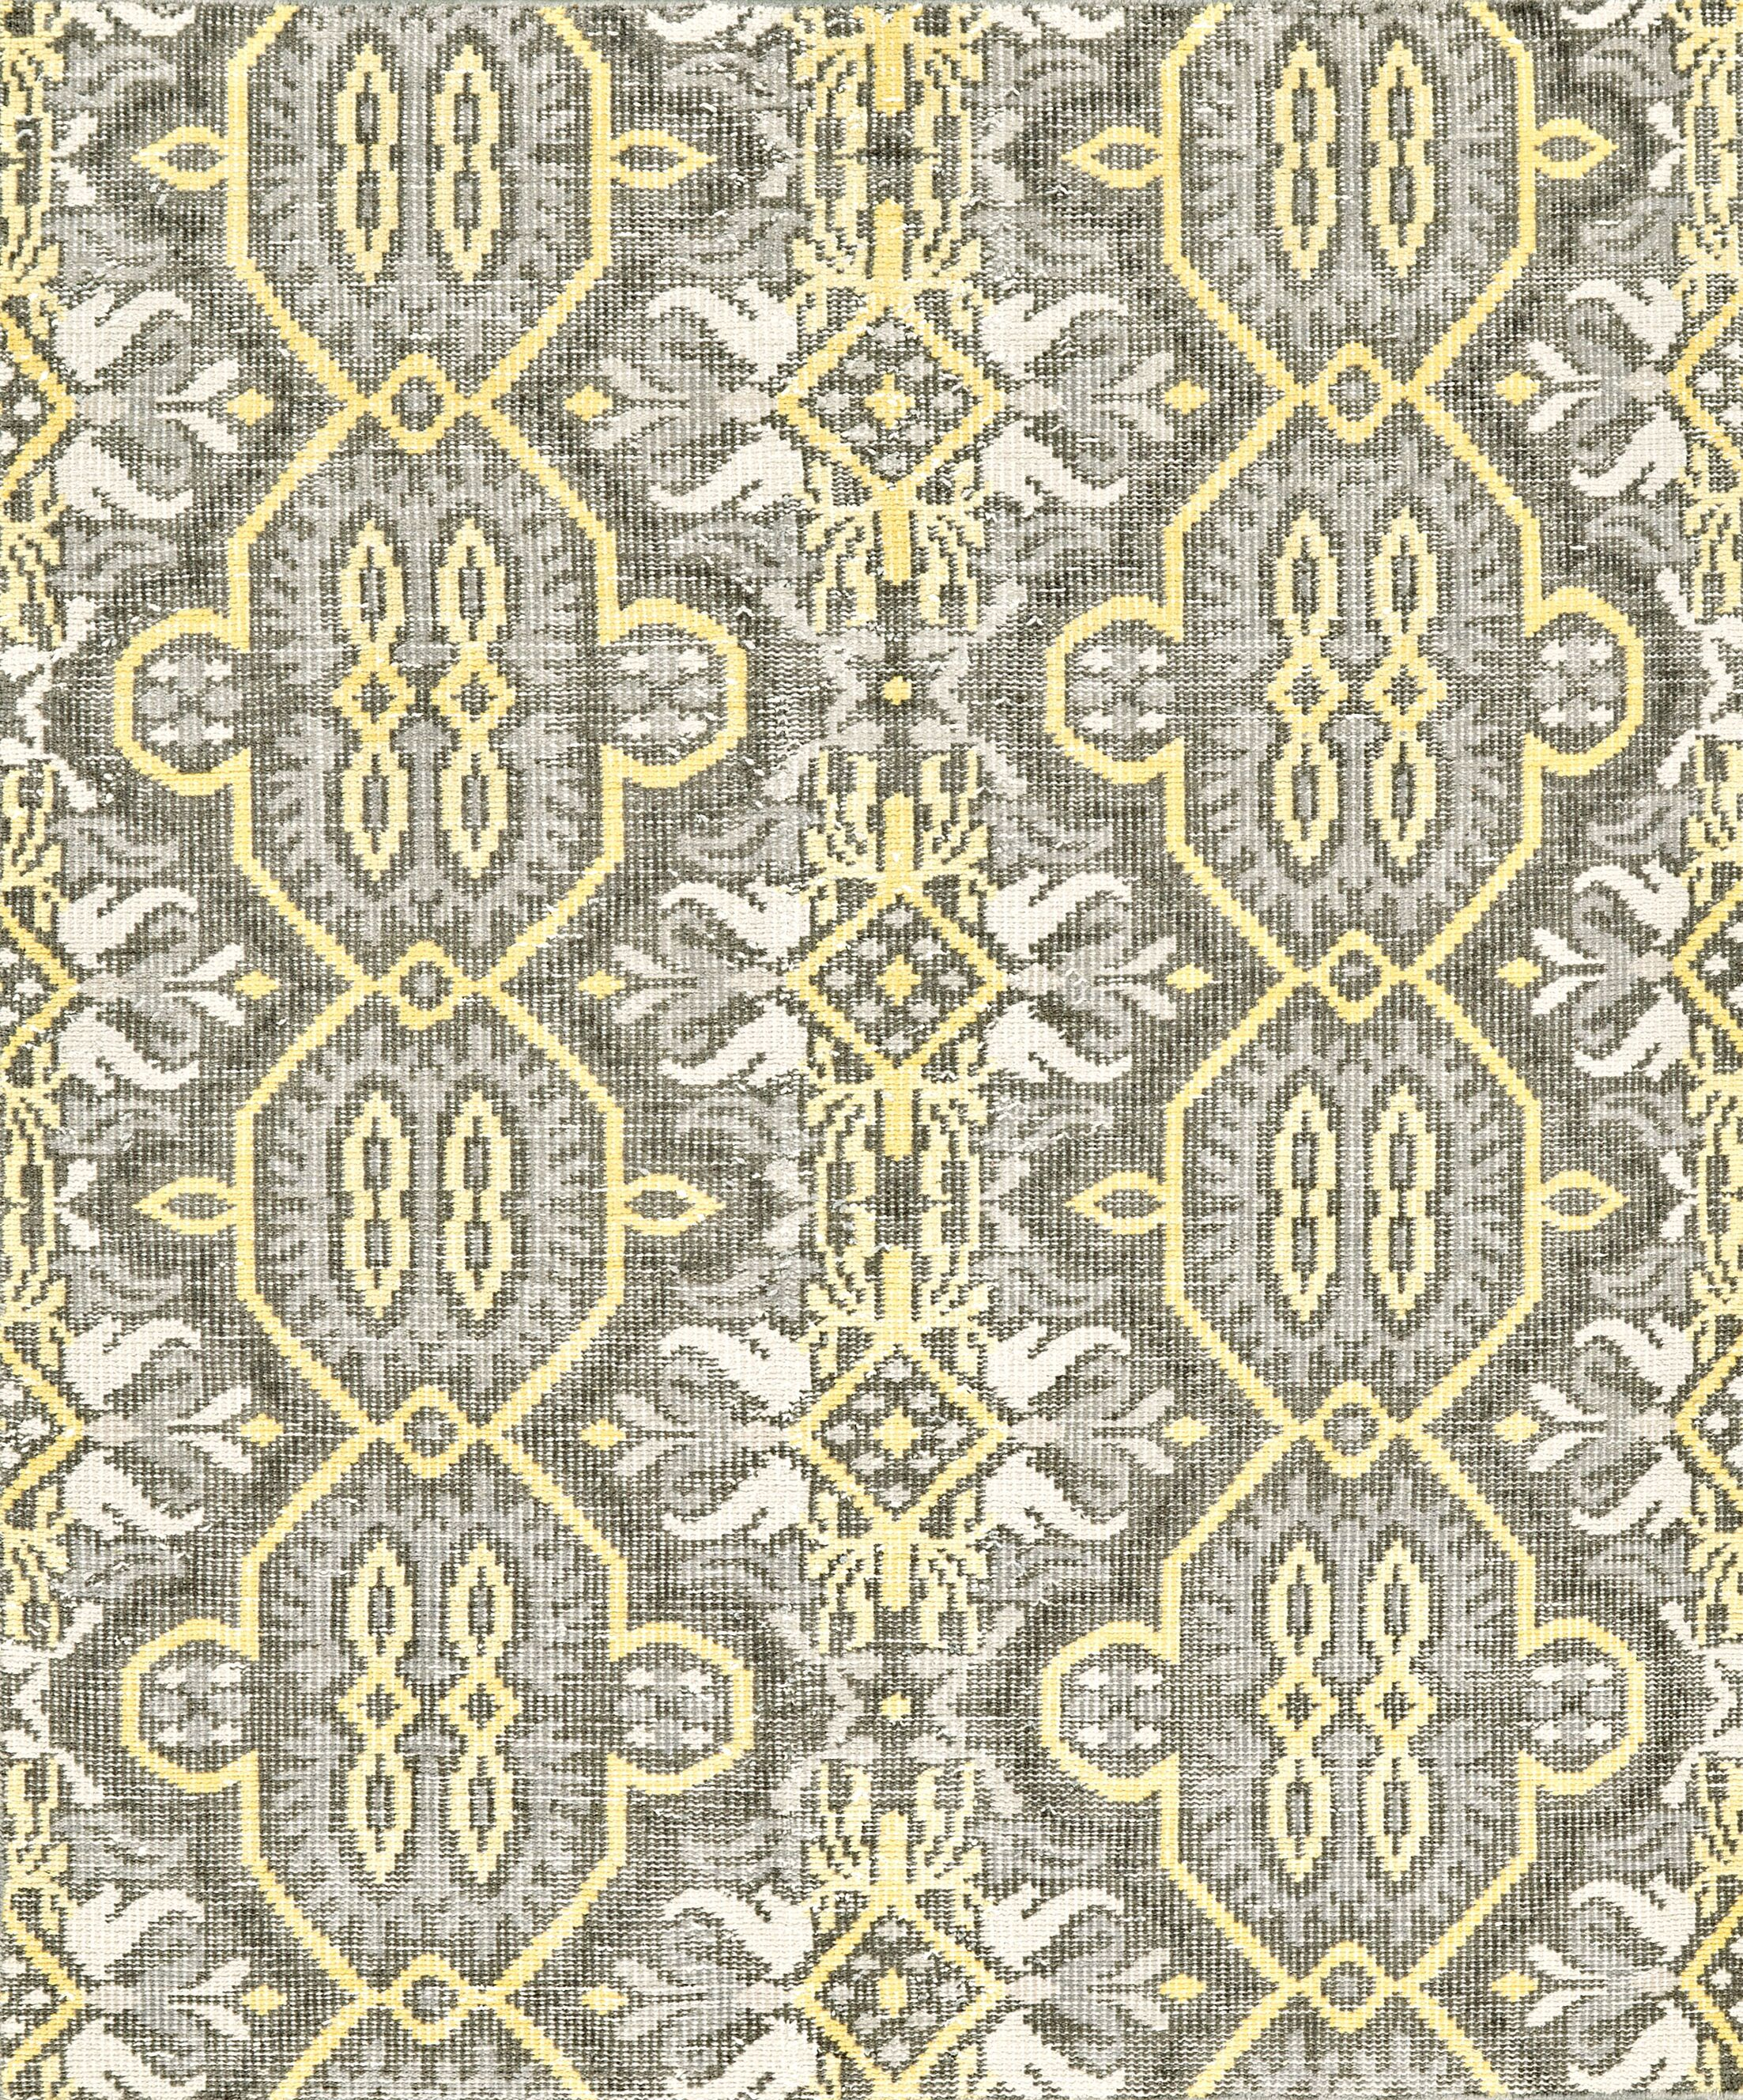 Deija Hand-Knotted Wool Maize Area Rug Rug Size: Rectangle 5'6